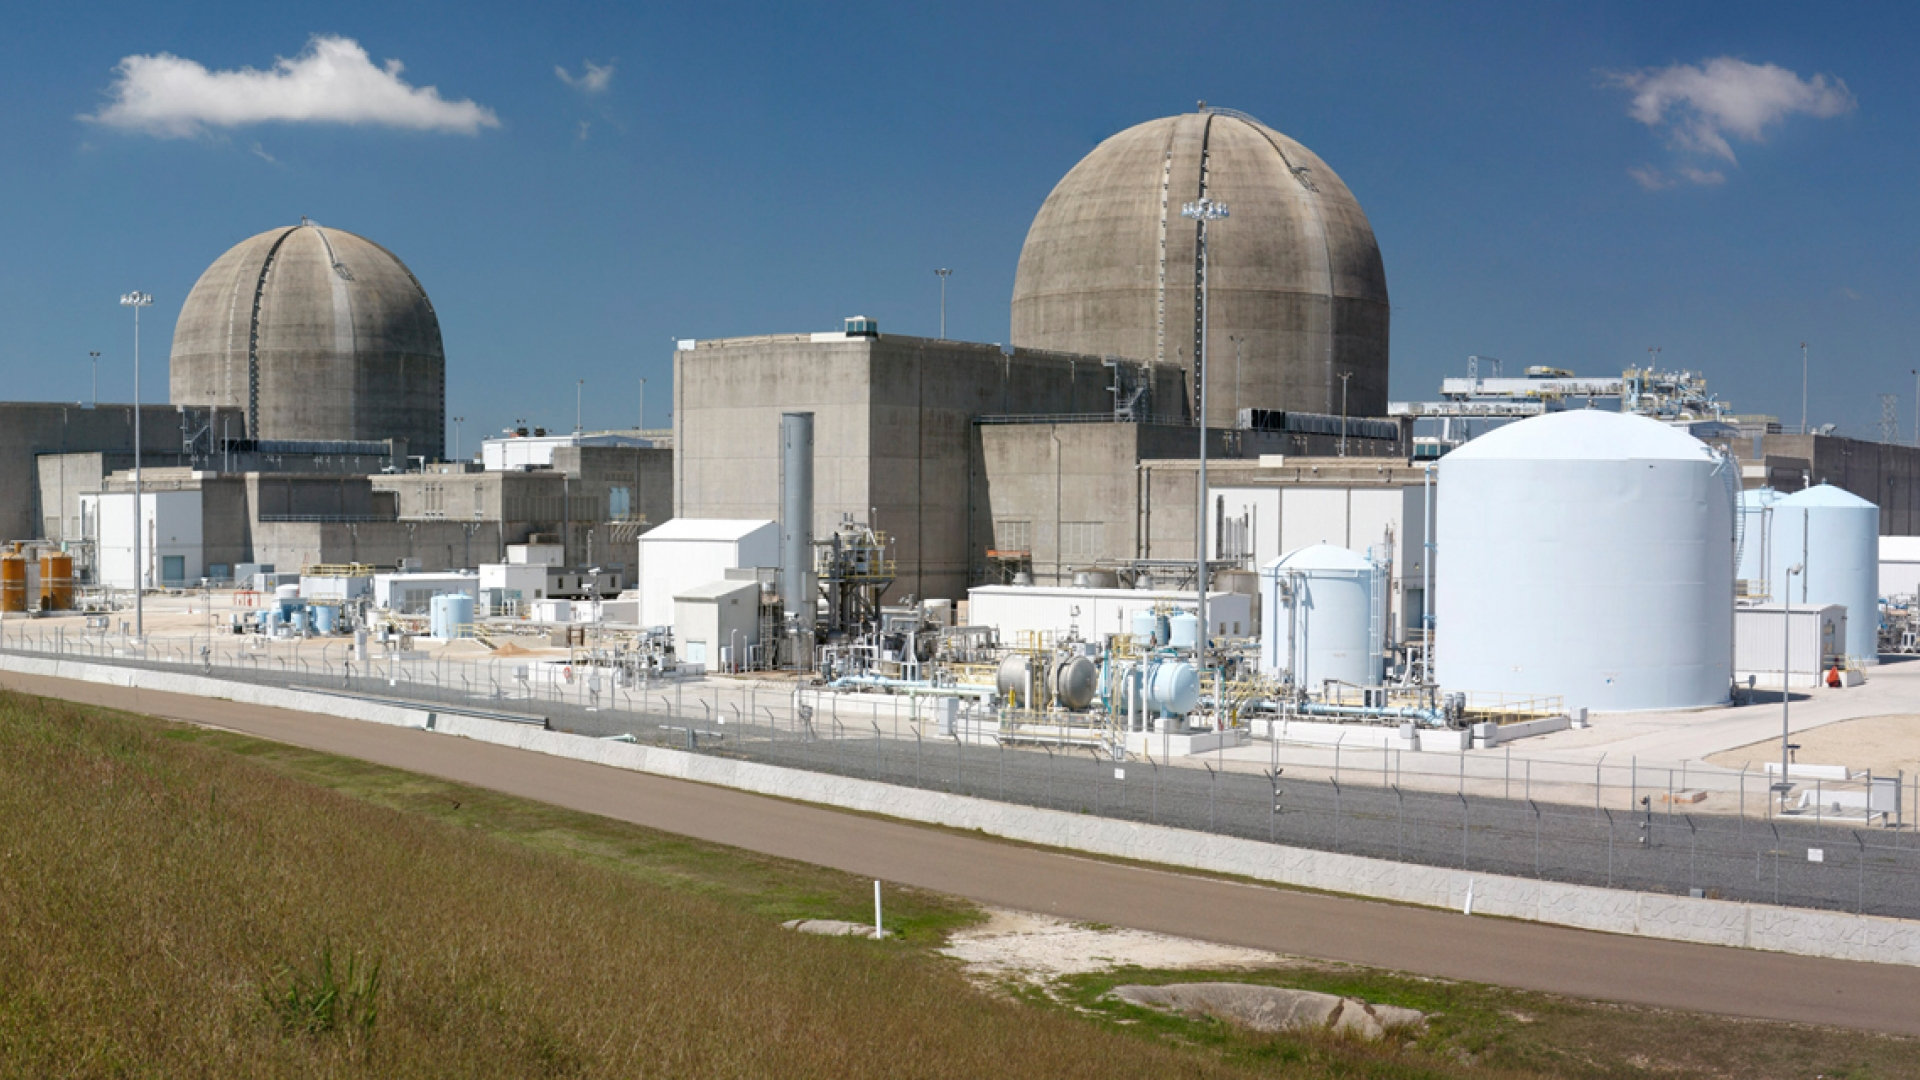 Iaea Conference On Nuclear Power Plant Life Management Opens